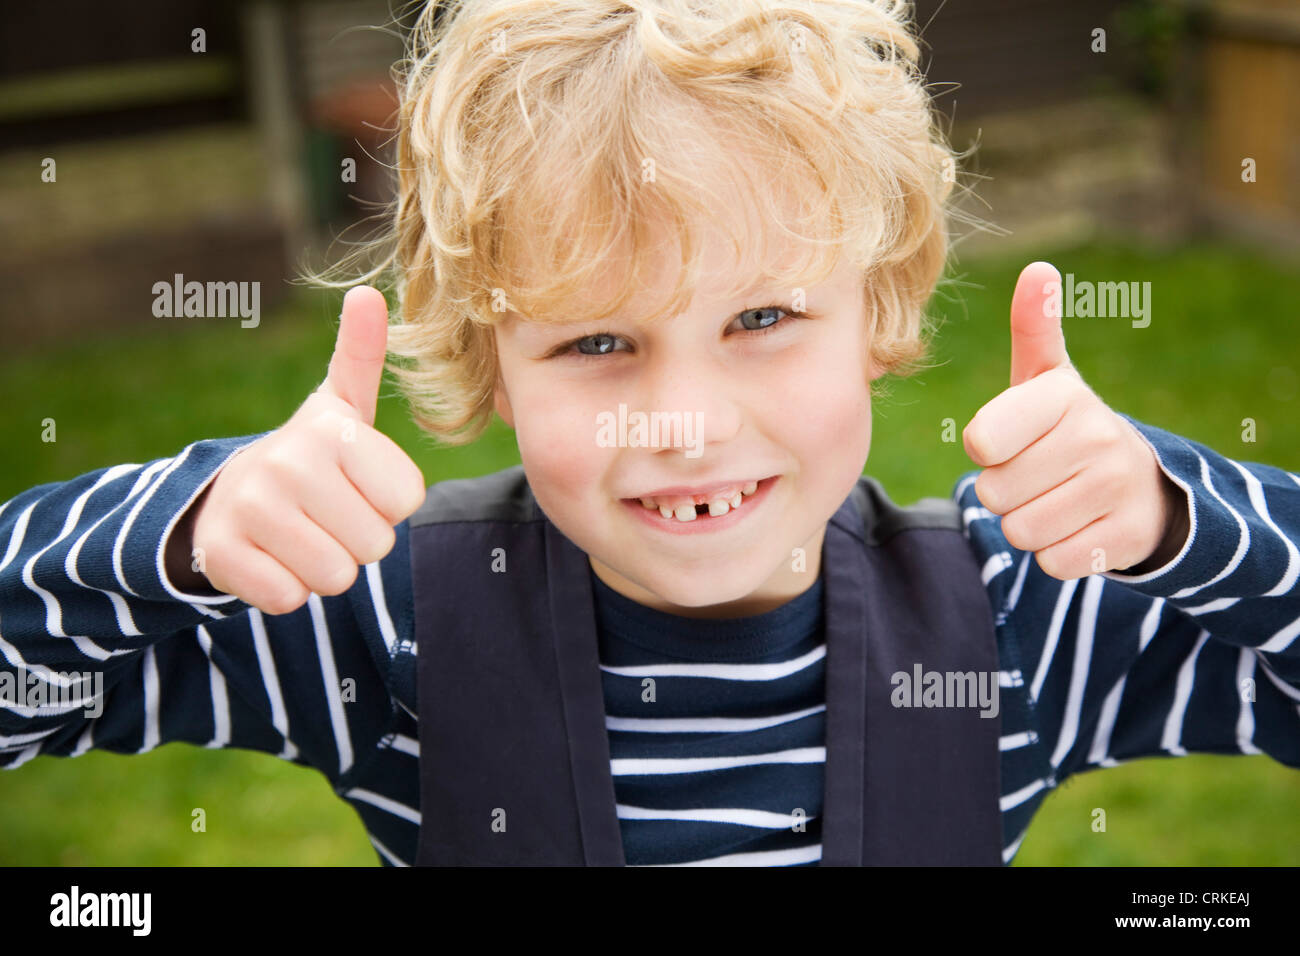 Smiling boy giving thumbs-up outdoors - Stock Image